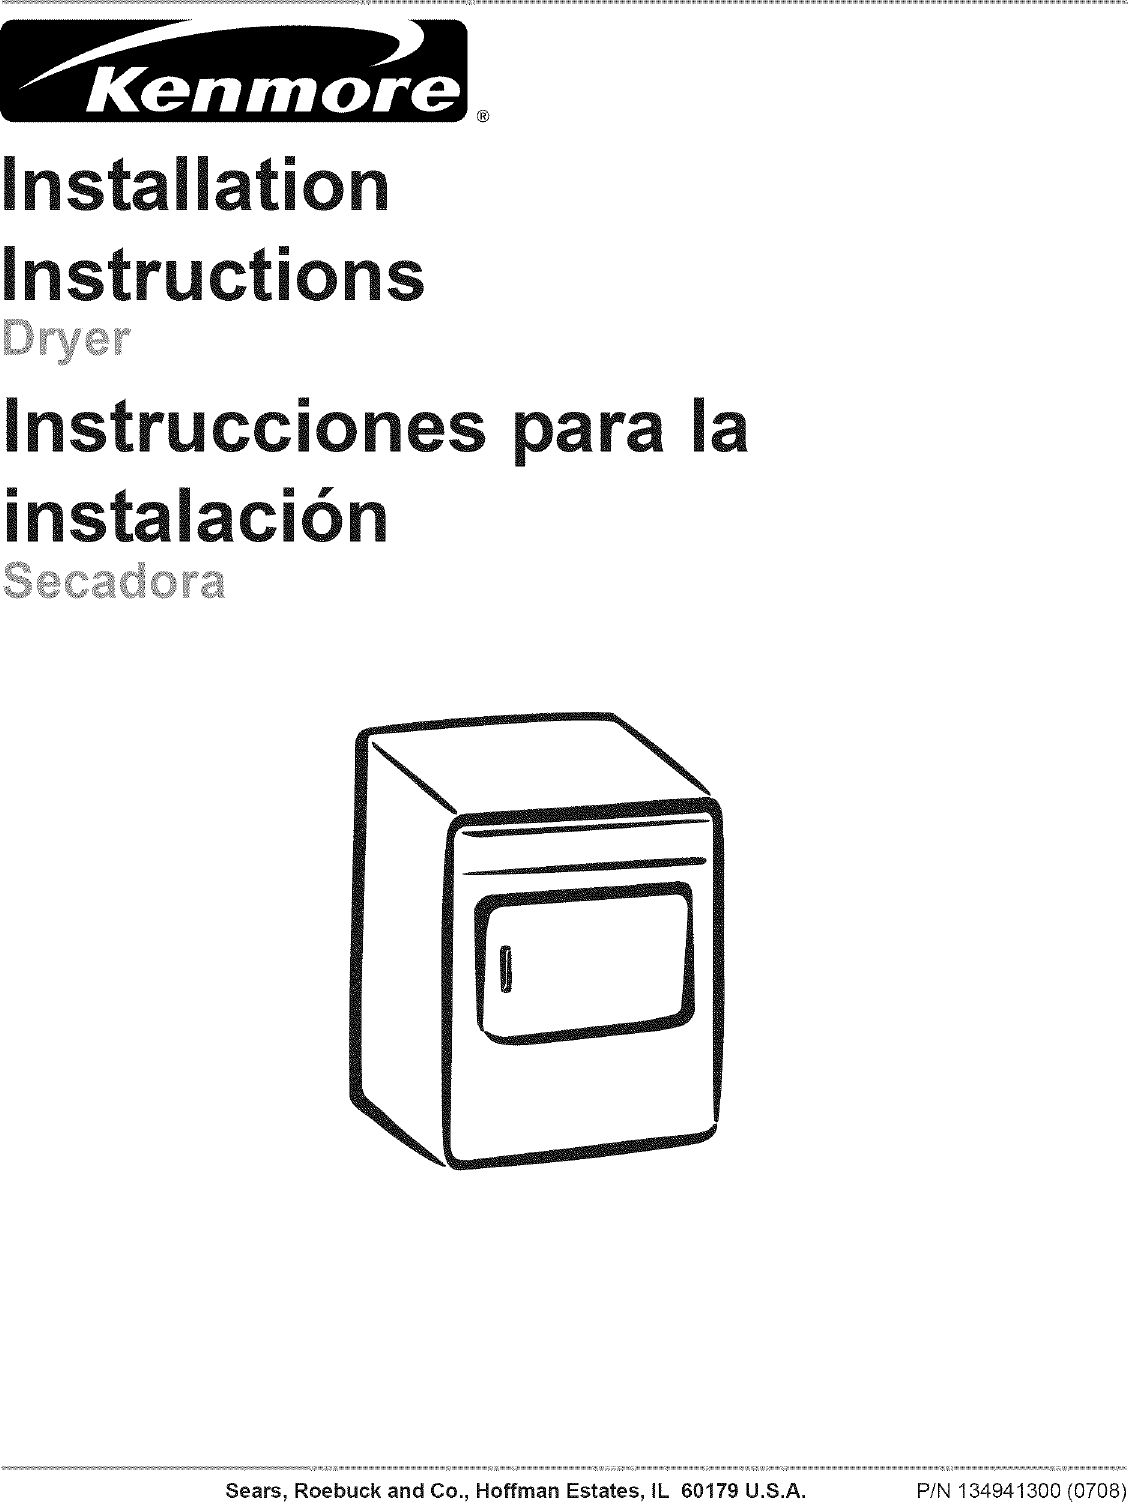 Kenmore 41788042700 User Manual DRYER Manuals And Guides